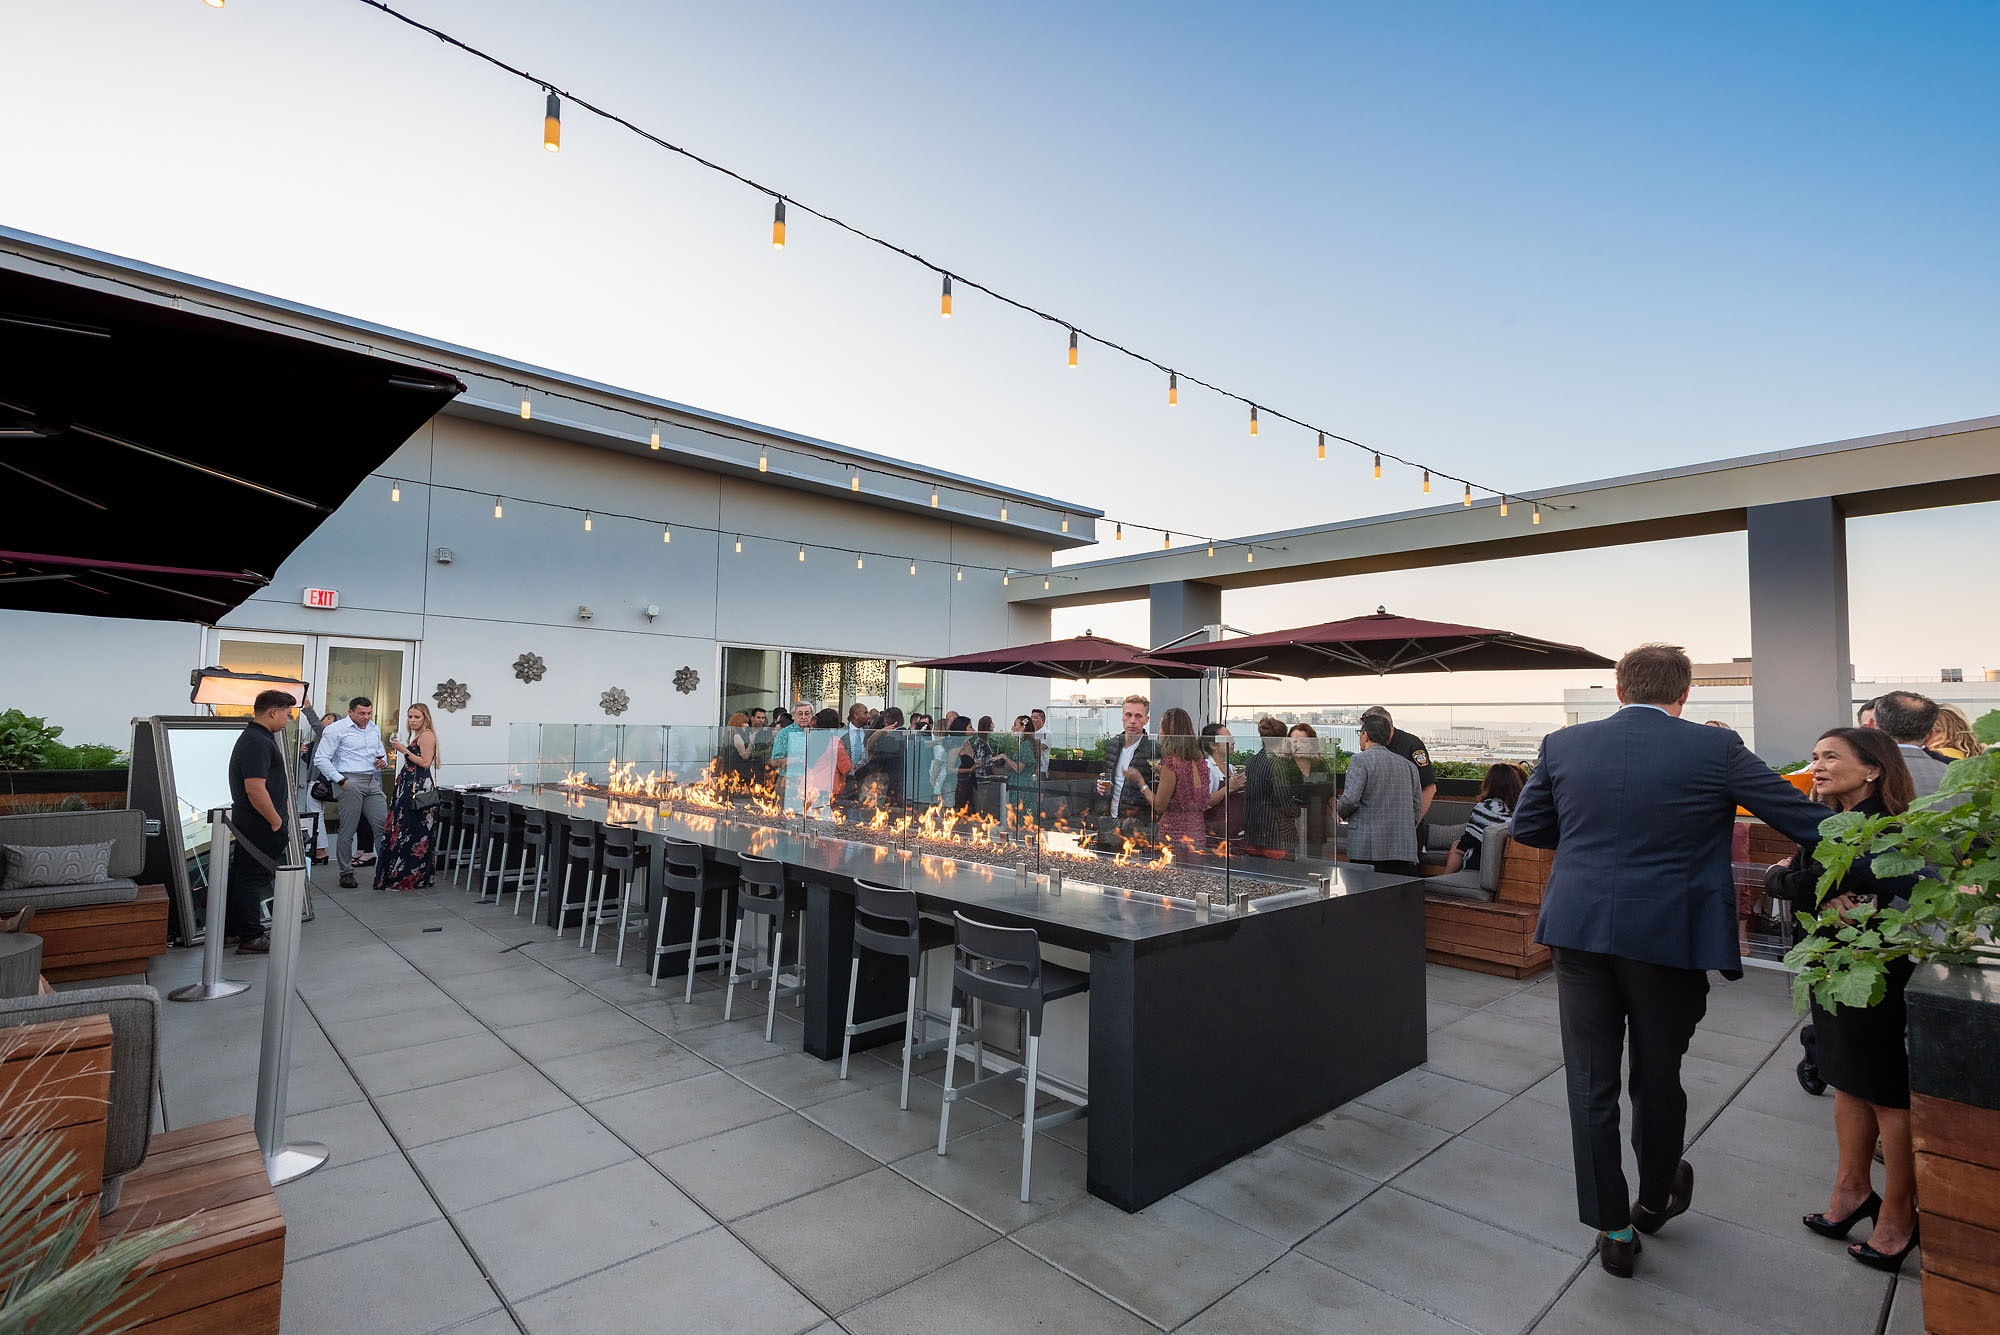 Rooftop bar with outdoor fire, umbrellas, and hanging lights.